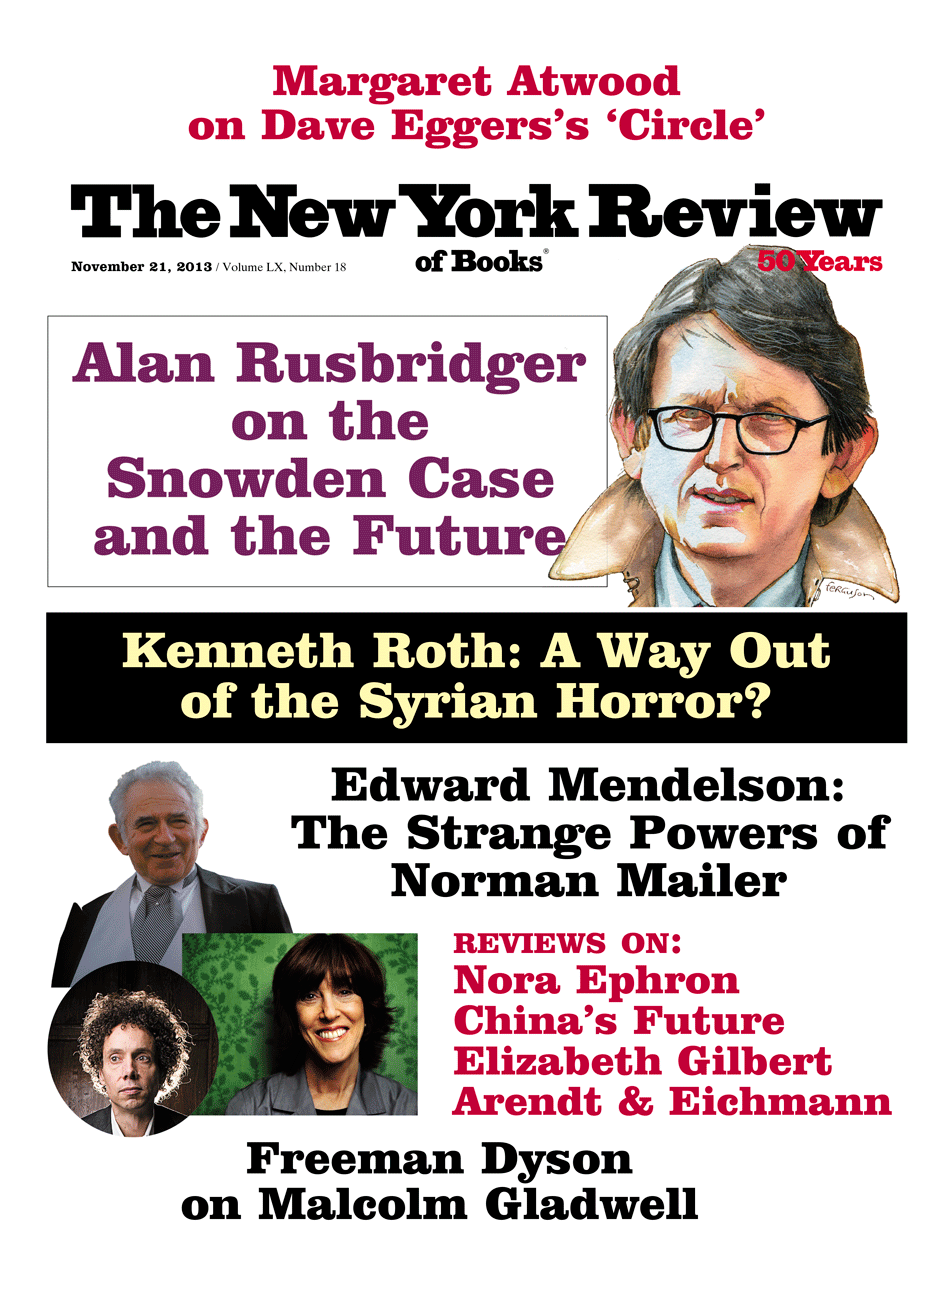 Image of the November 21, 2013 issue cover.